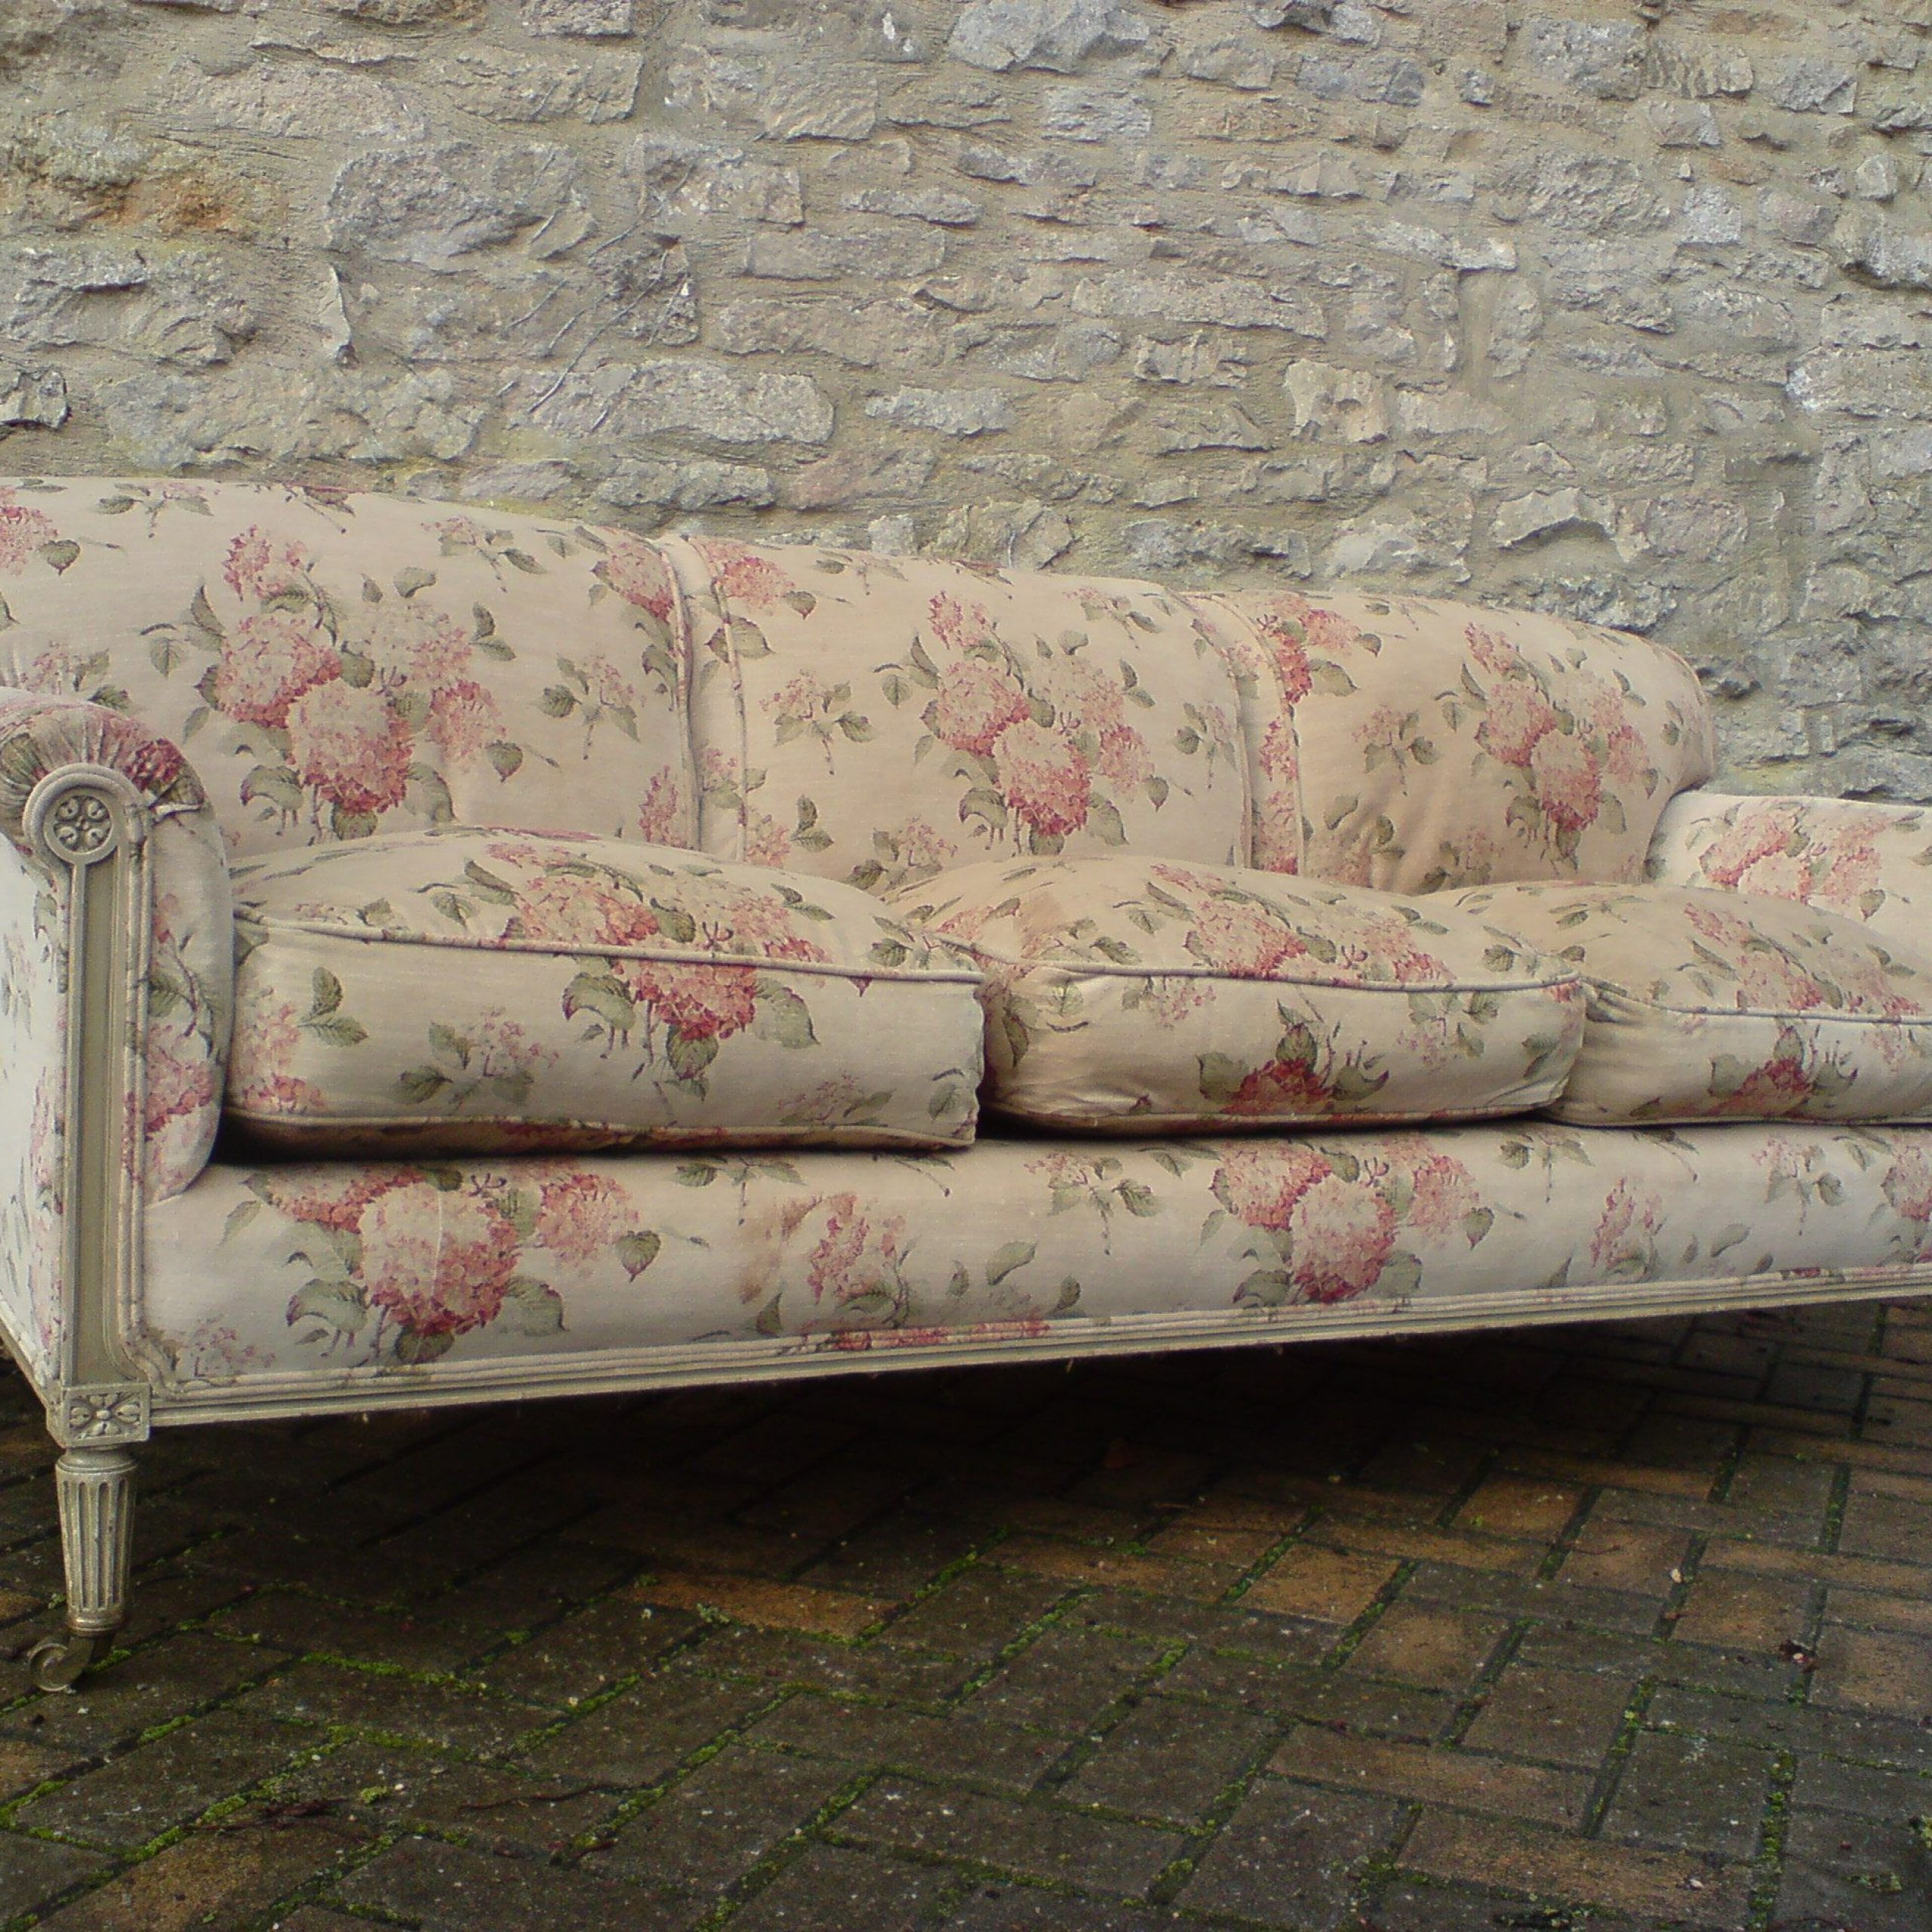 1870 1890 Antique Howard & Sons Sofa   Cottage Style Sofa Intended For Shabby Chic Sofas (View 3 of 15)